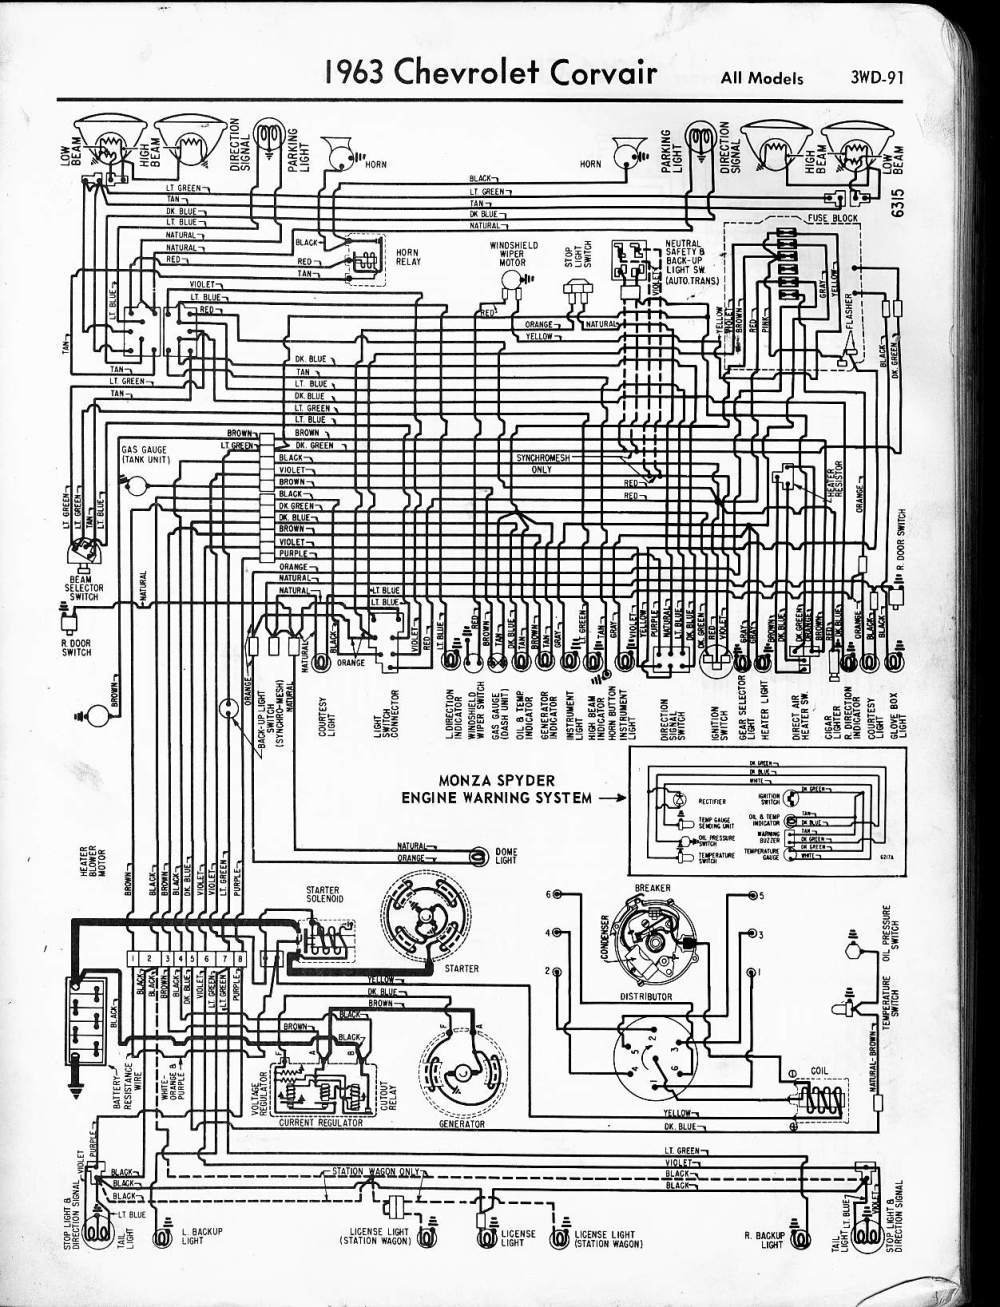 medium resolution of 1963 corvair wiring diagram free wiring diagram for you u2022 1966 chevrolet corvair interior 1966 corvair wiring schematic